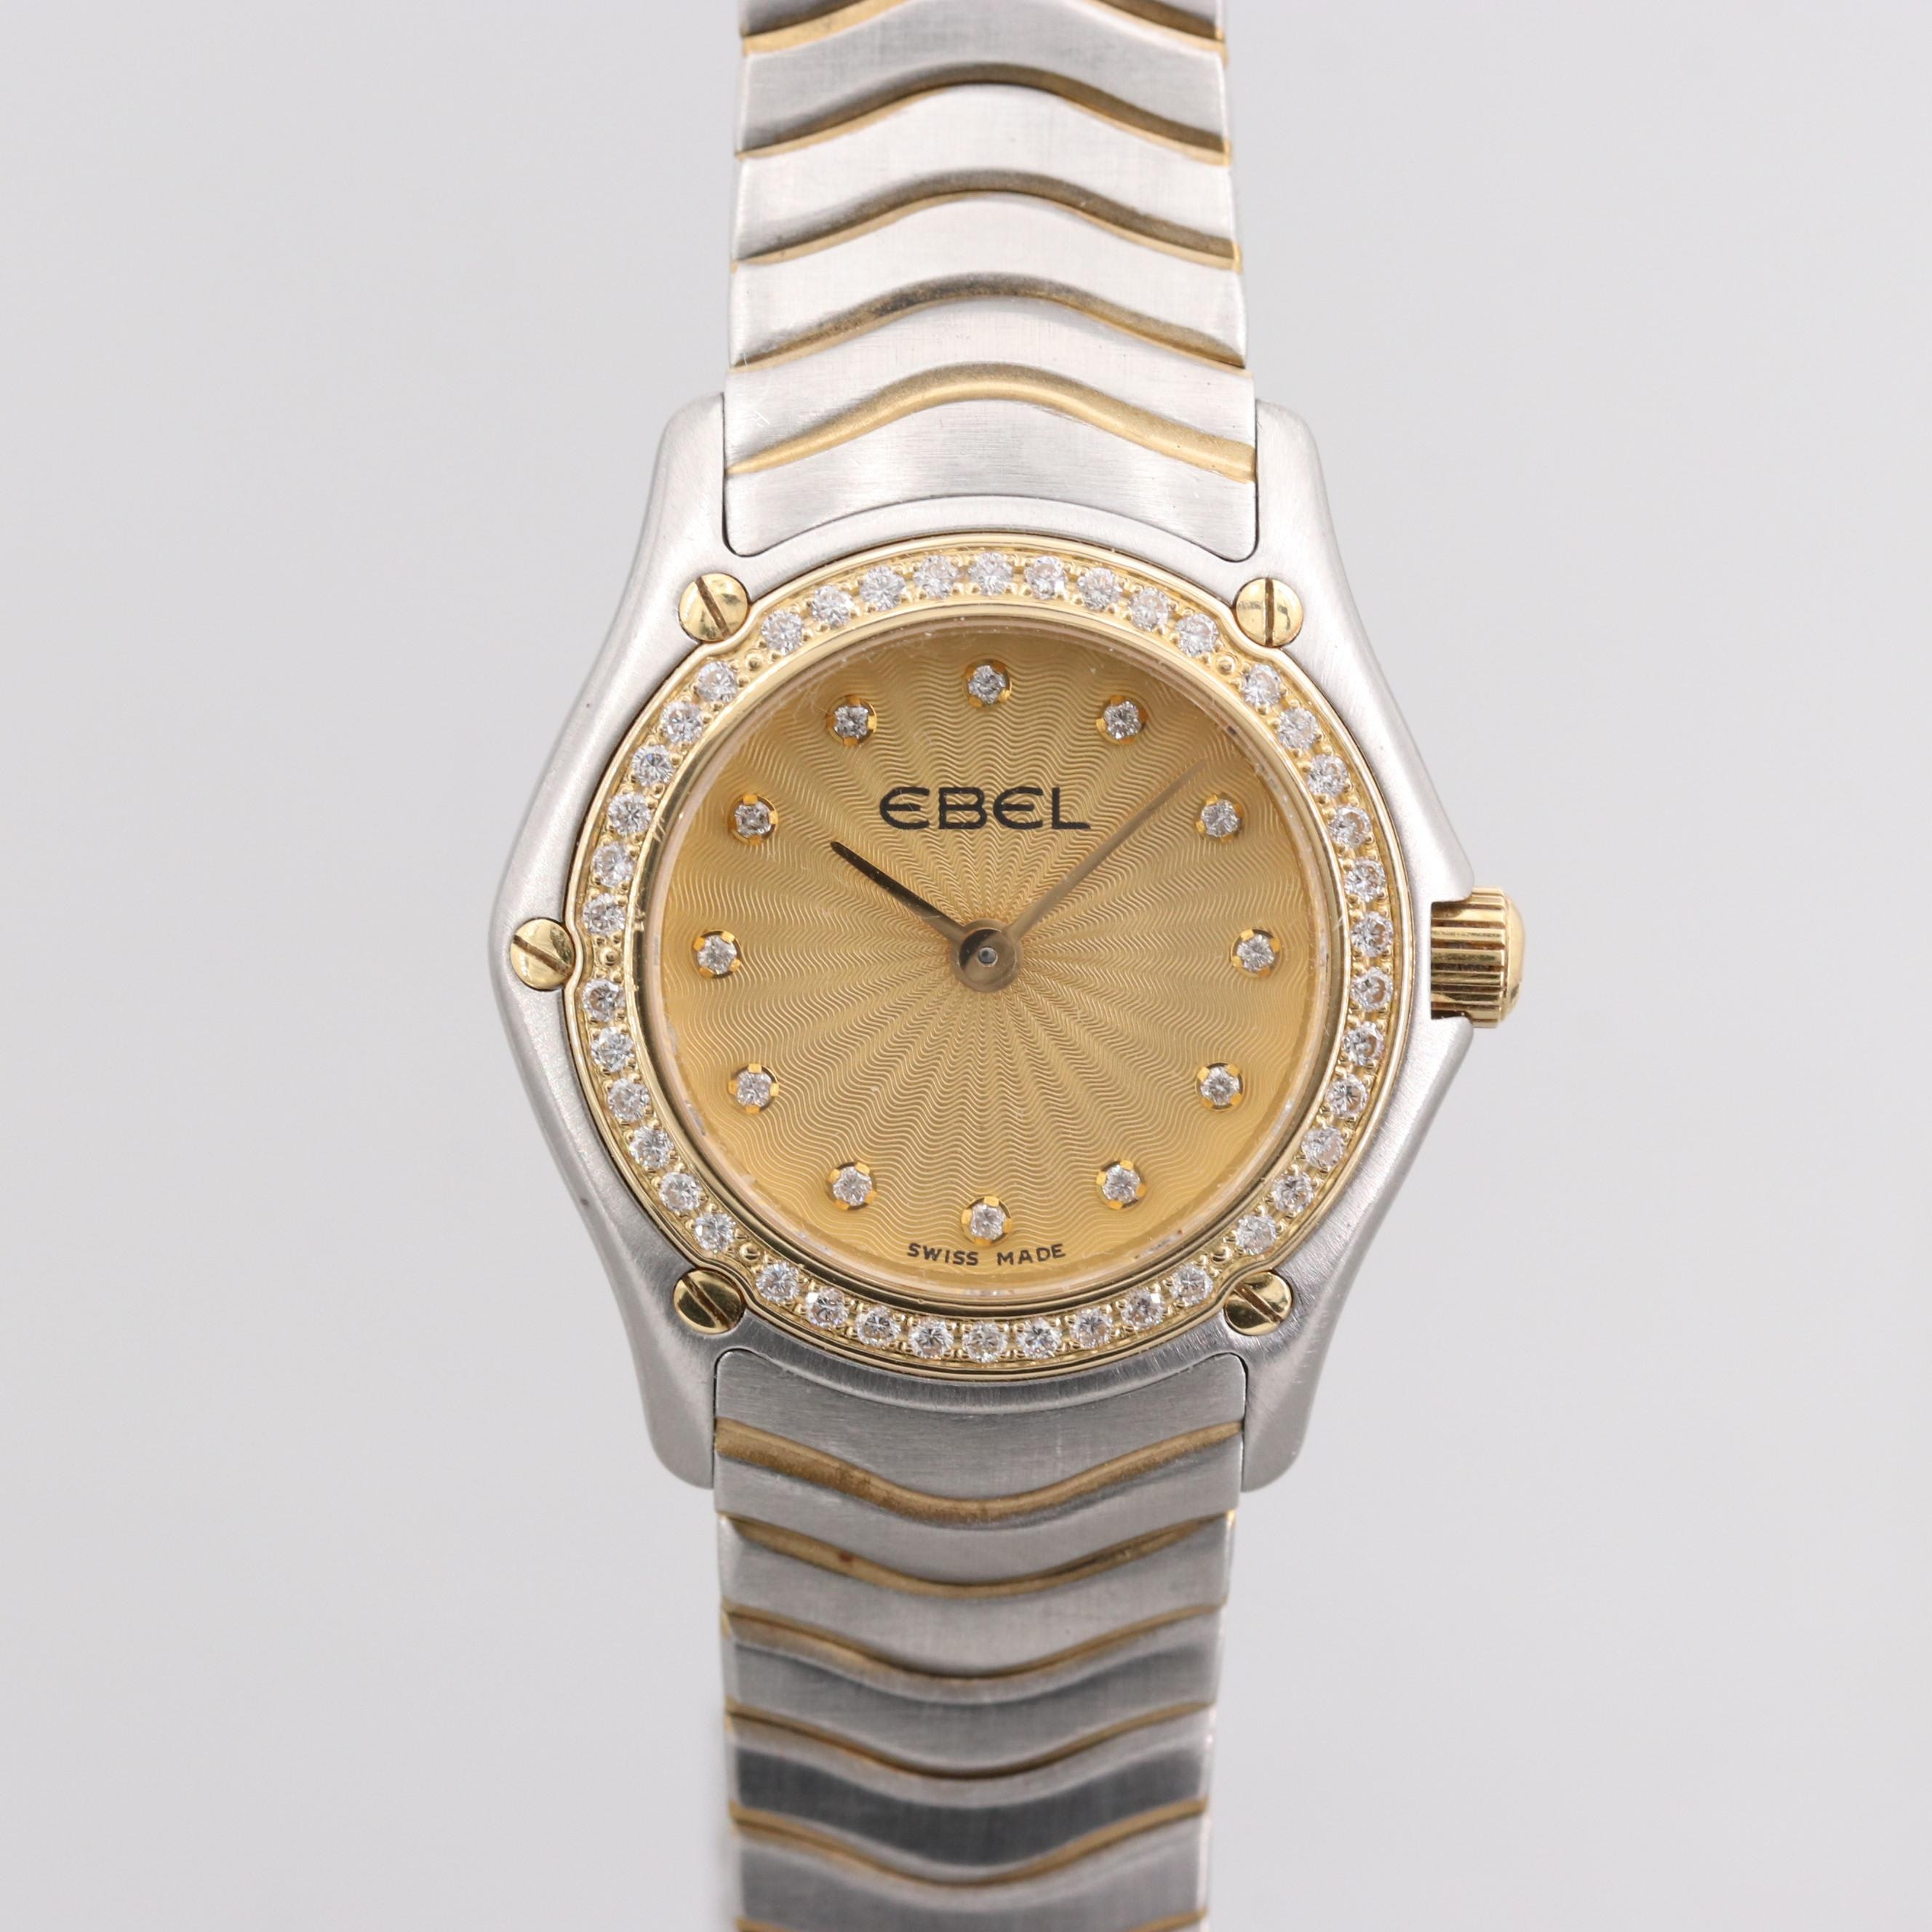 Ebel Stainless Steel and 18K Yellow Gold With Diamond Bezel and Hour Markers